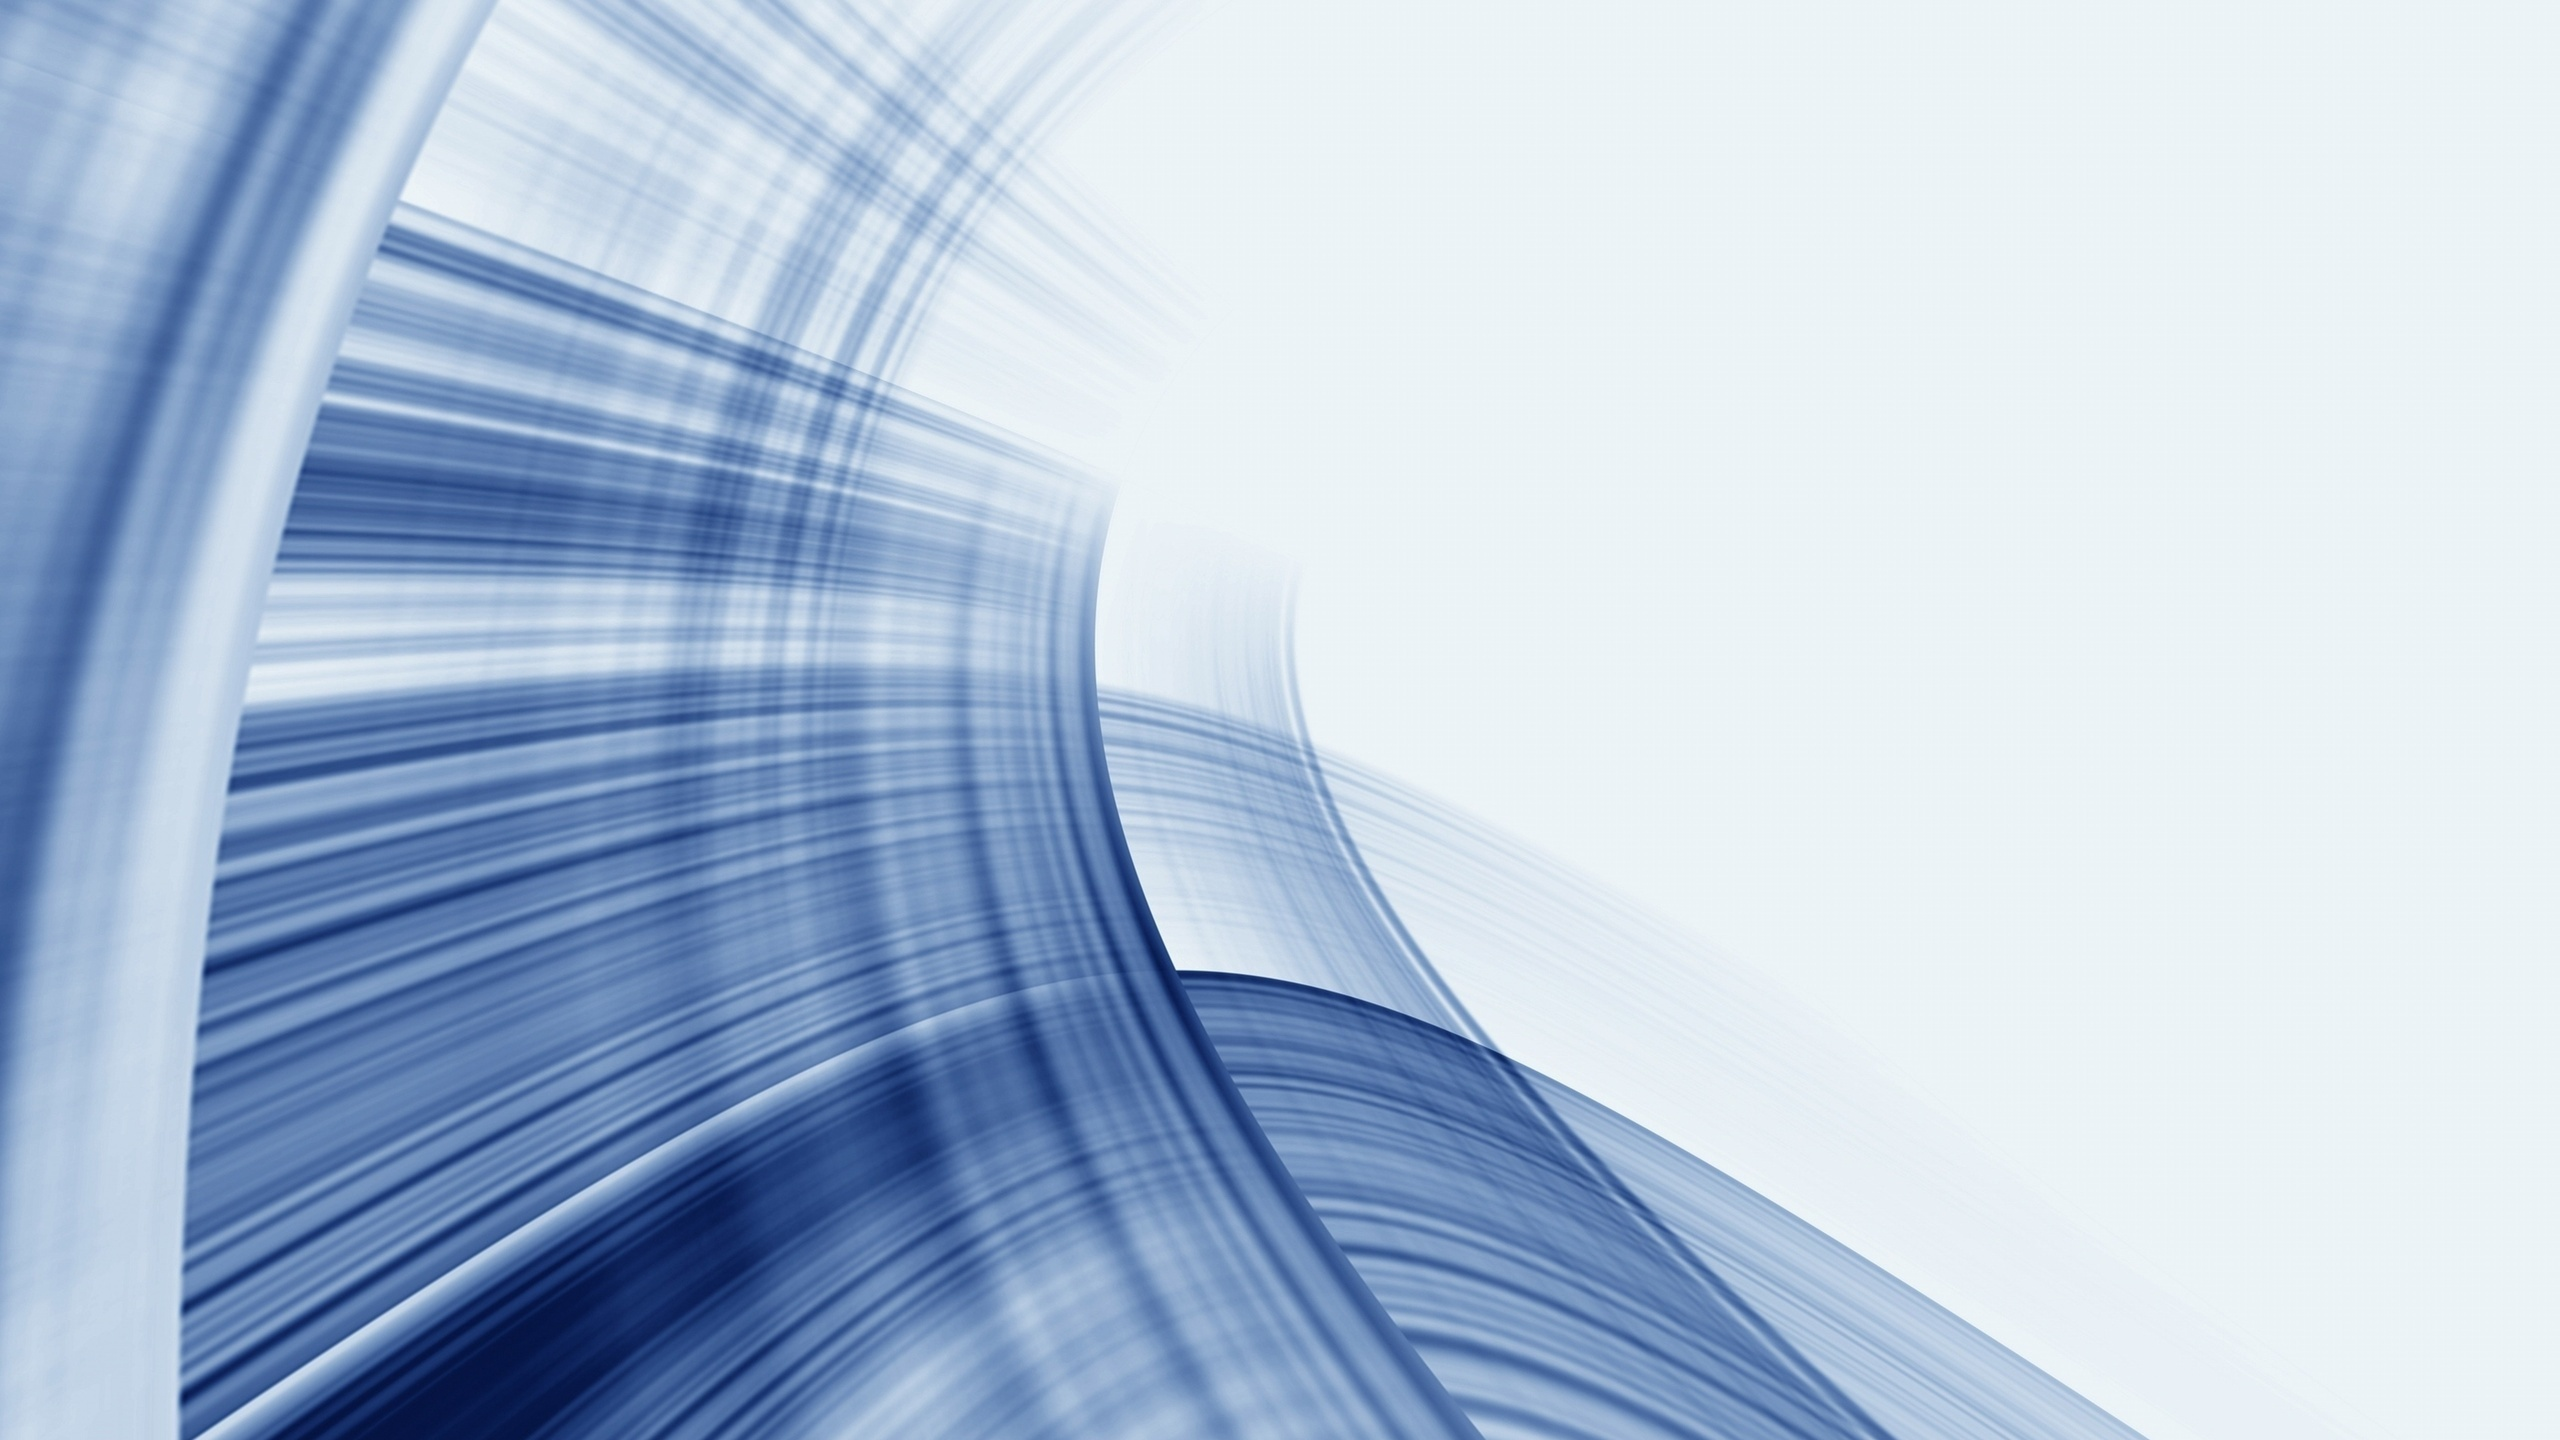 Abstract Blue White Lines